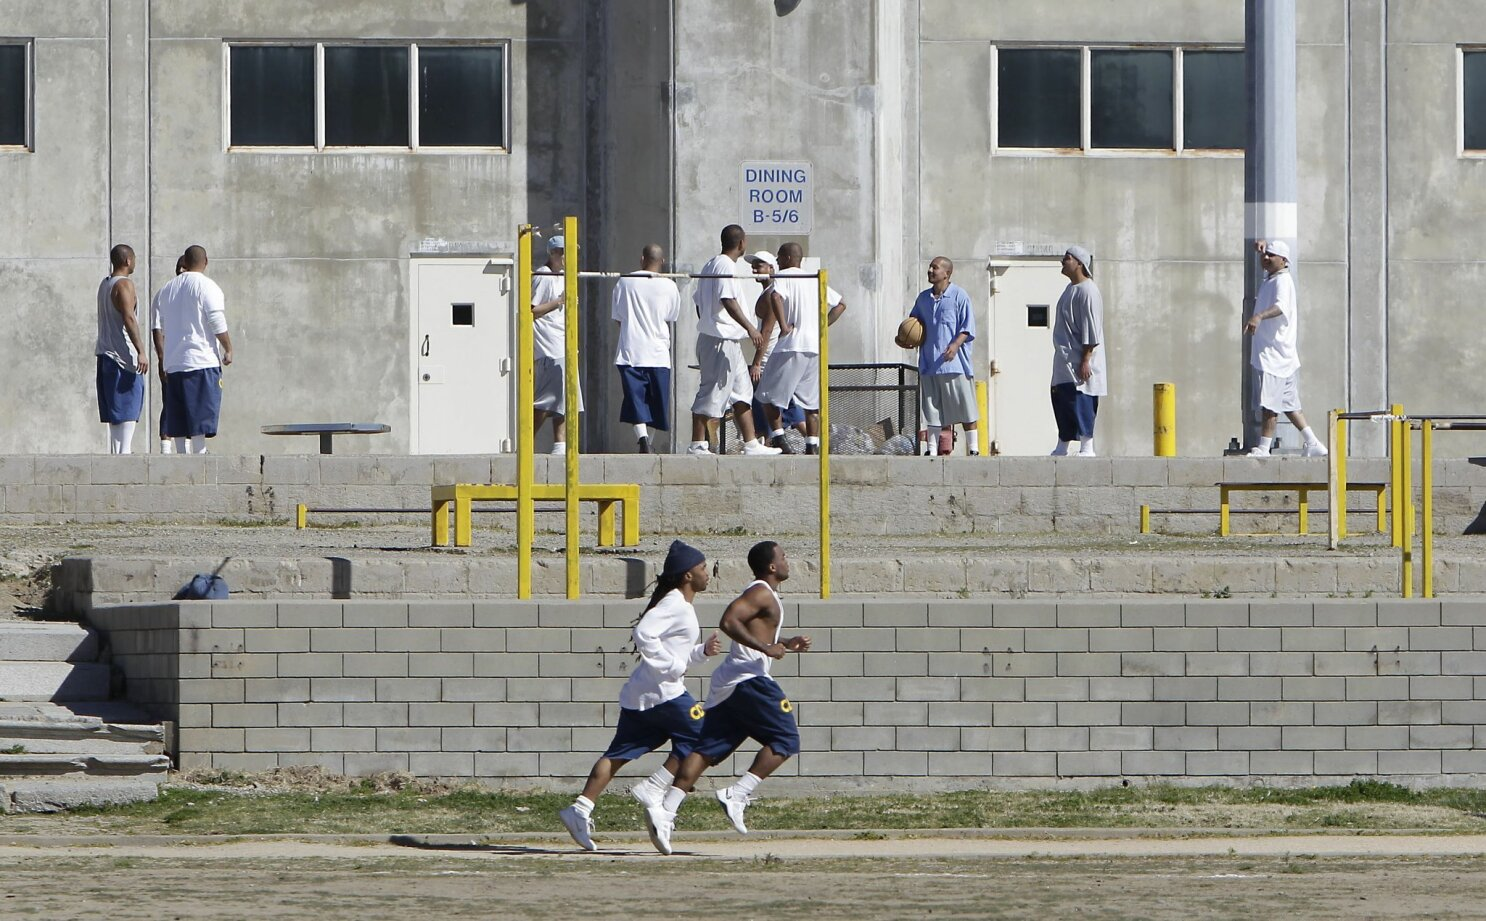 California prisons to take new balance after riots - The San Diego